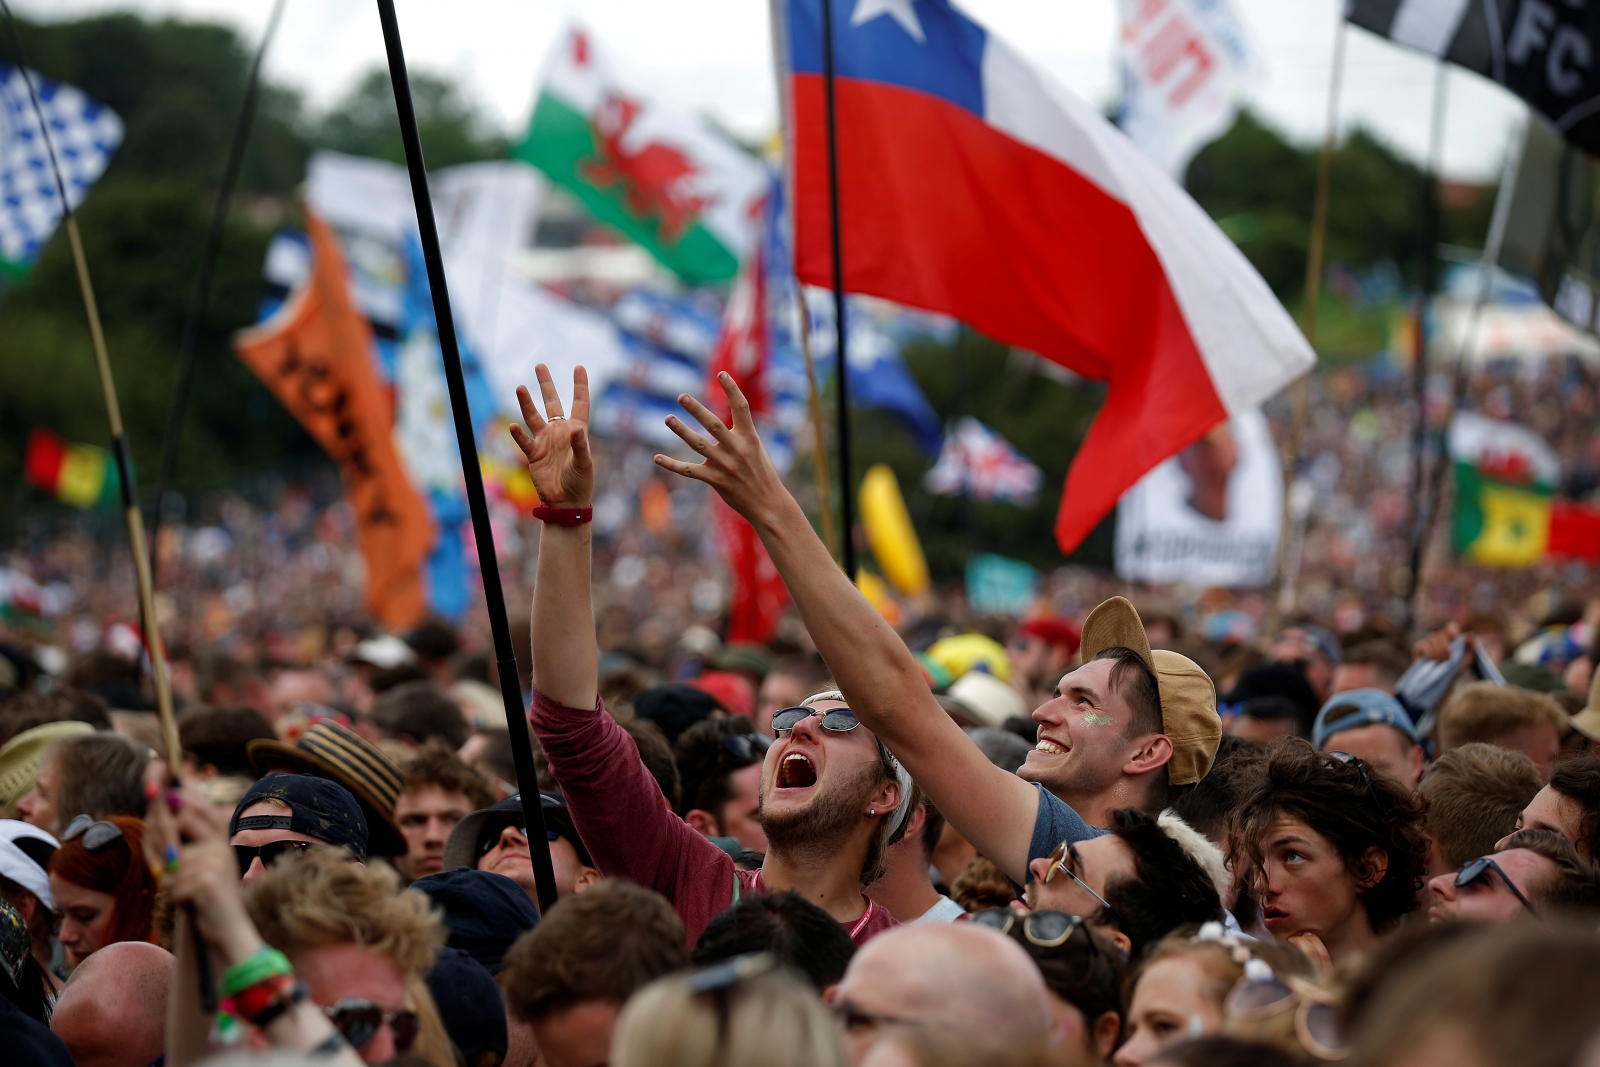 Glastonbury 2017 tickets sell out despite see tickets website crash